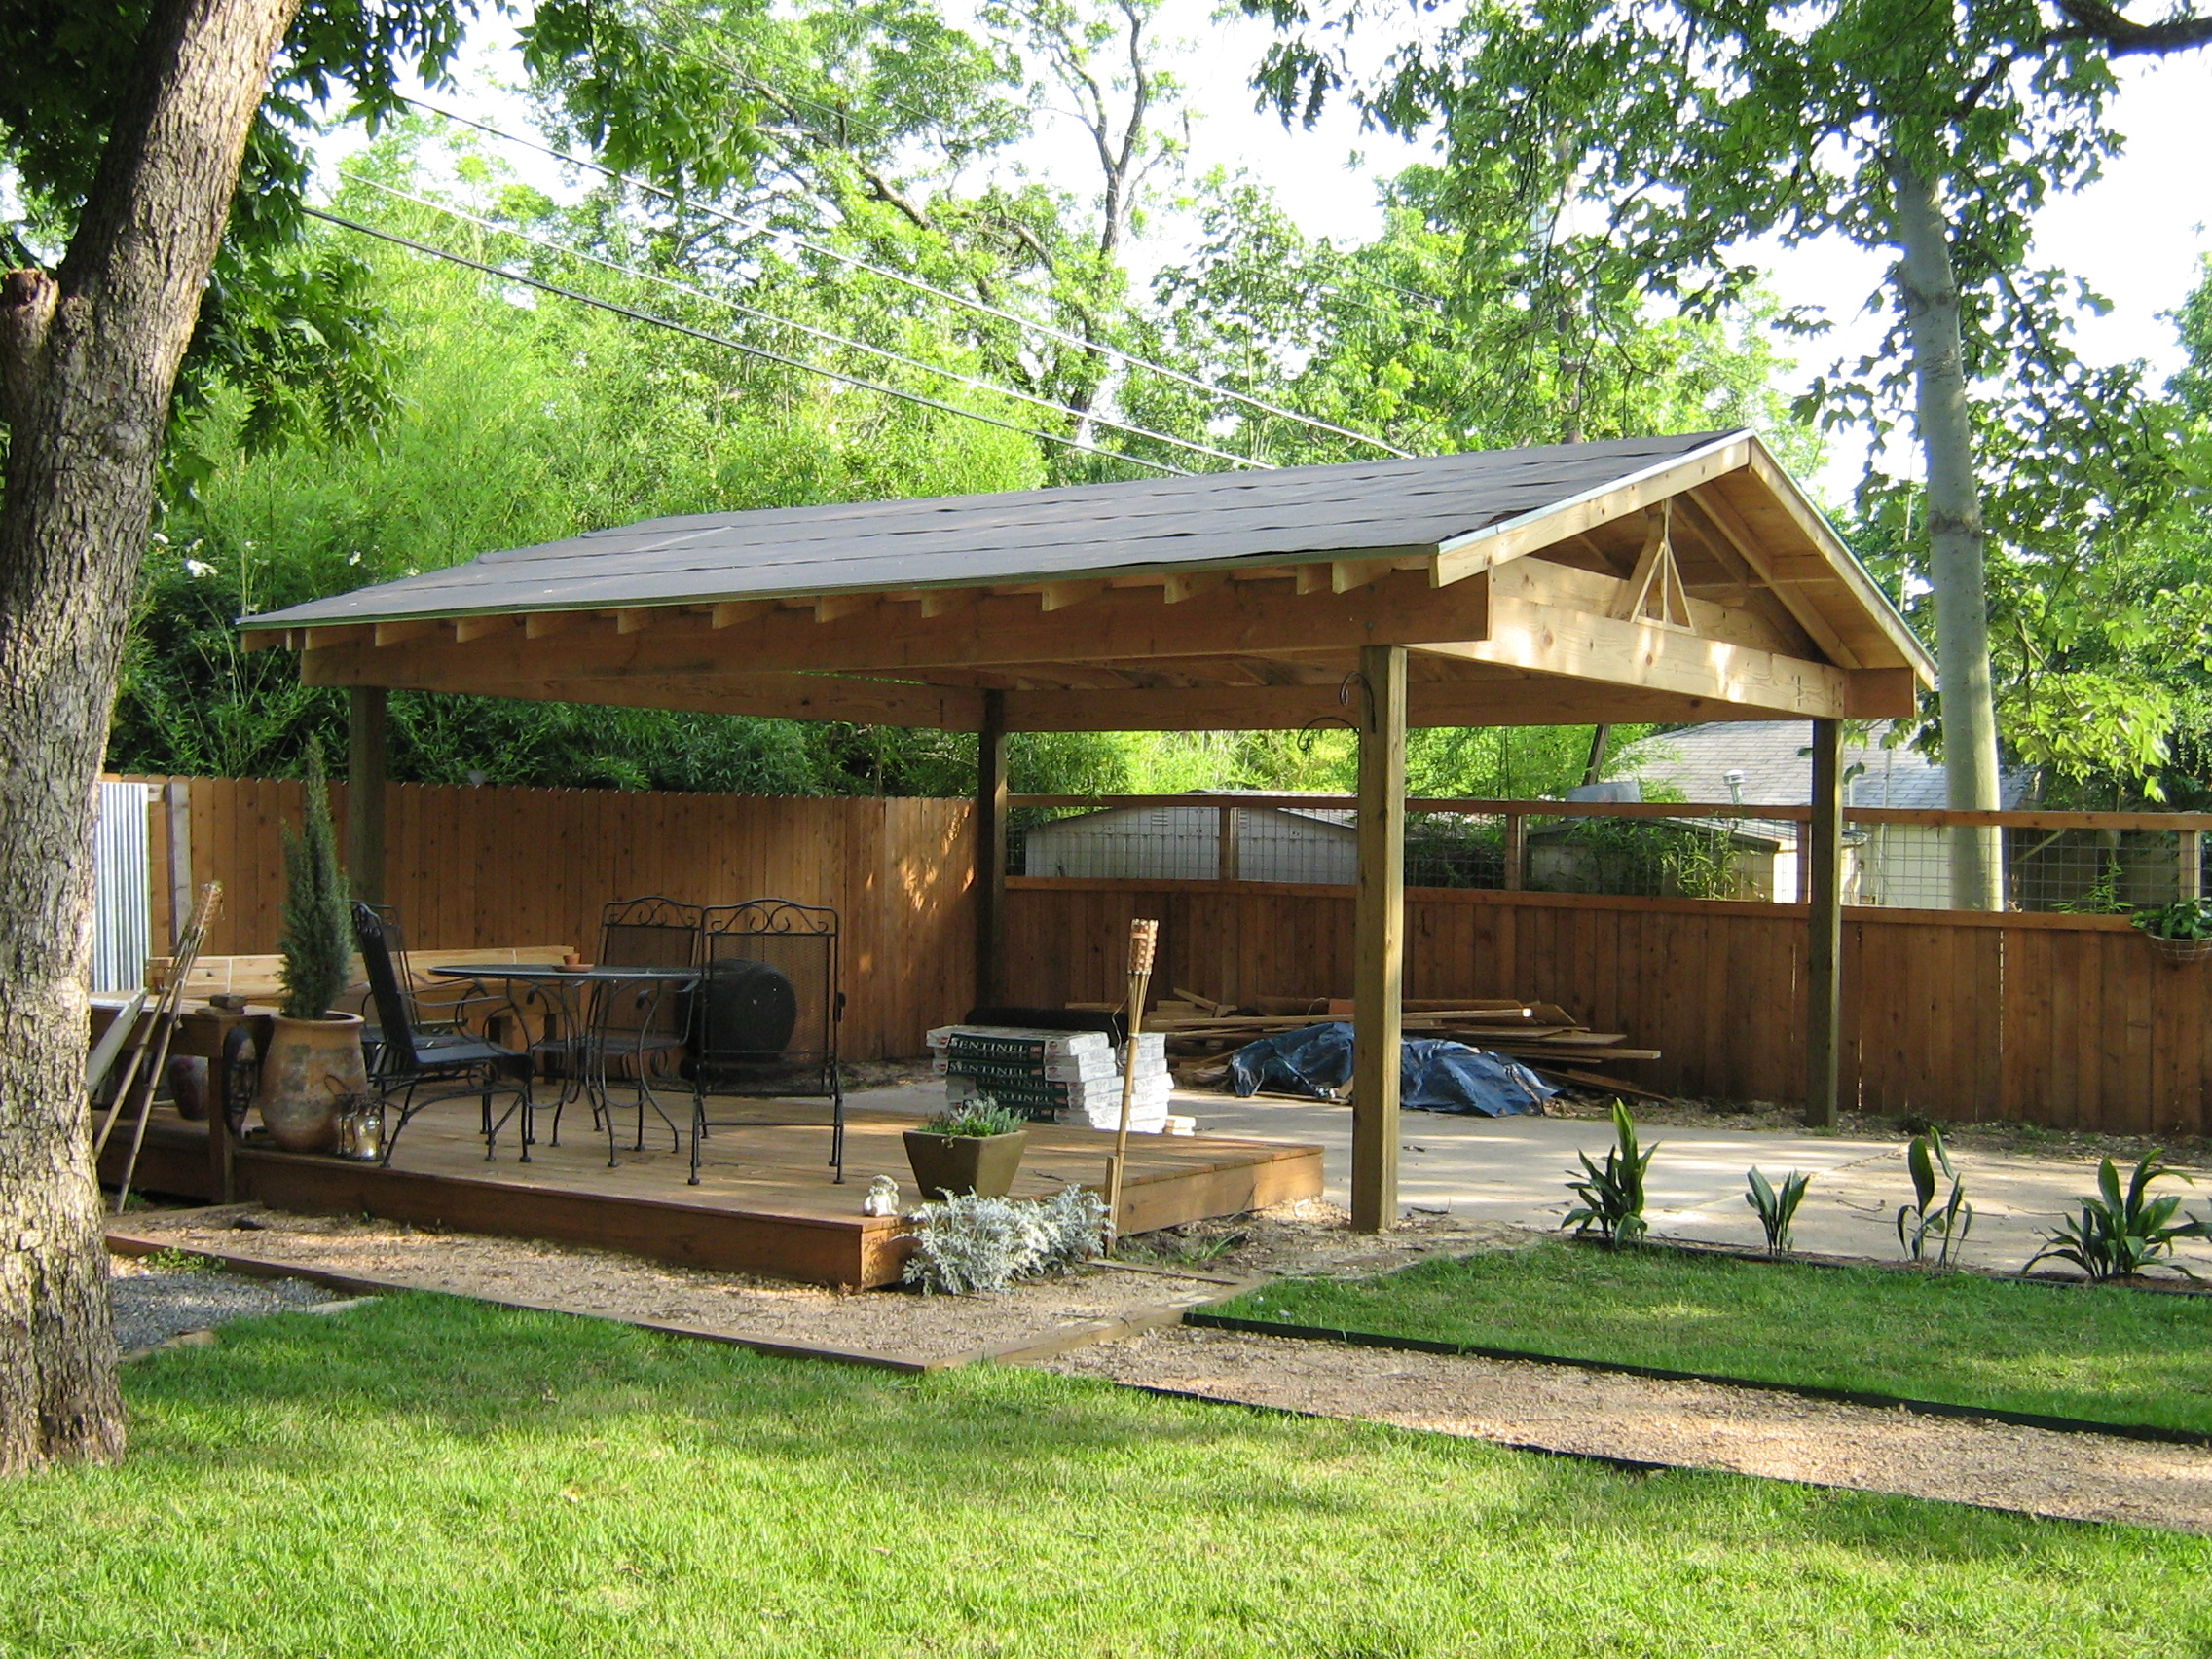 Gallery Of Houses With Carports : Wood carports photos home decorating ideas